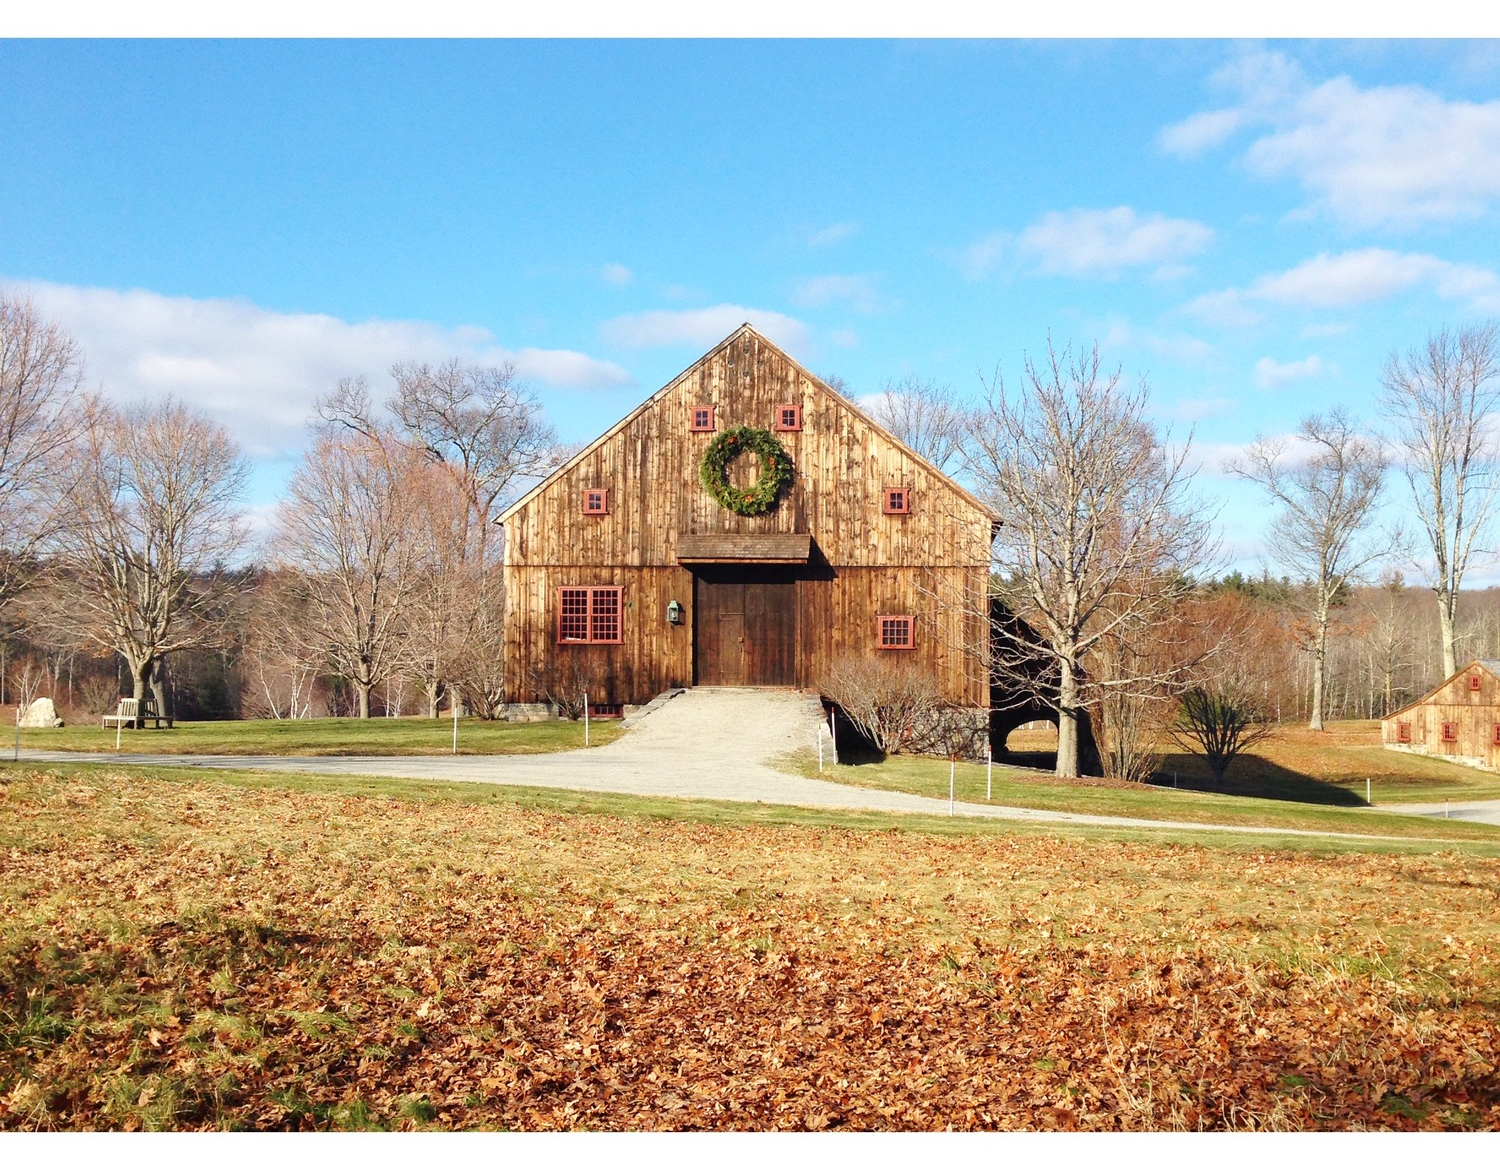 {Festive wreath on one of my favorite barns.}